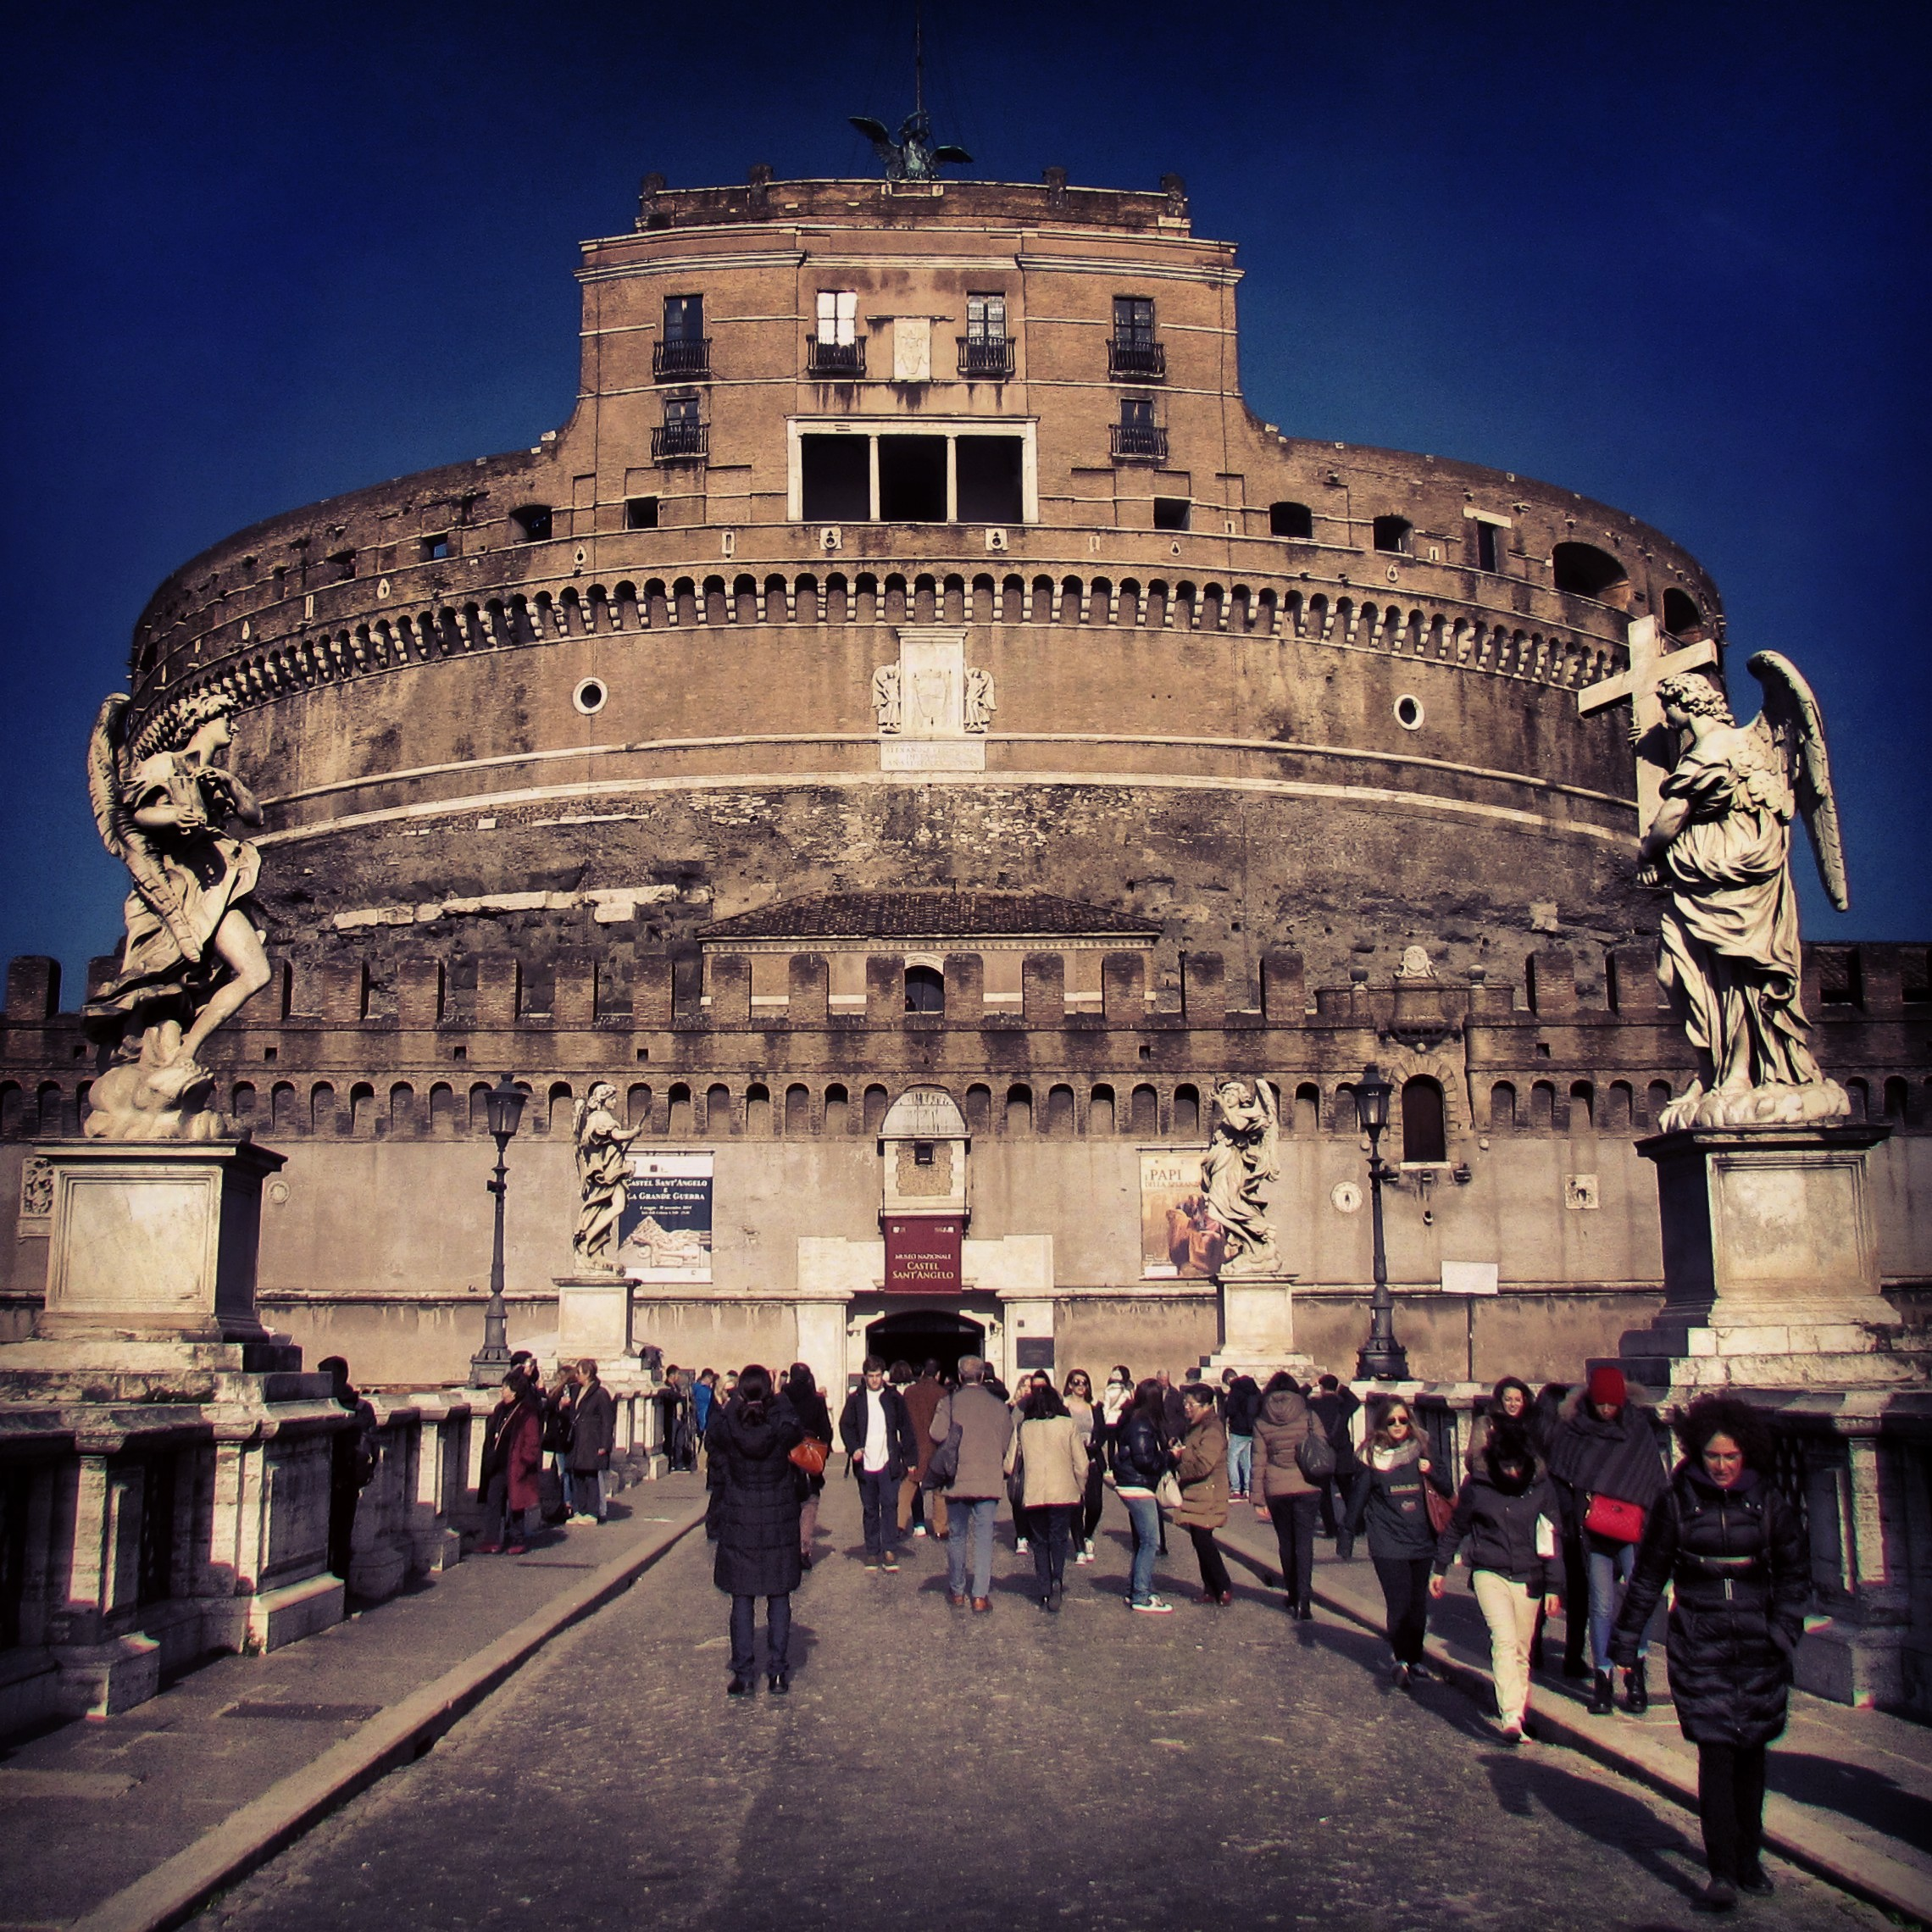 How to Spend a Day in Rome - Castel Sant'Angelo